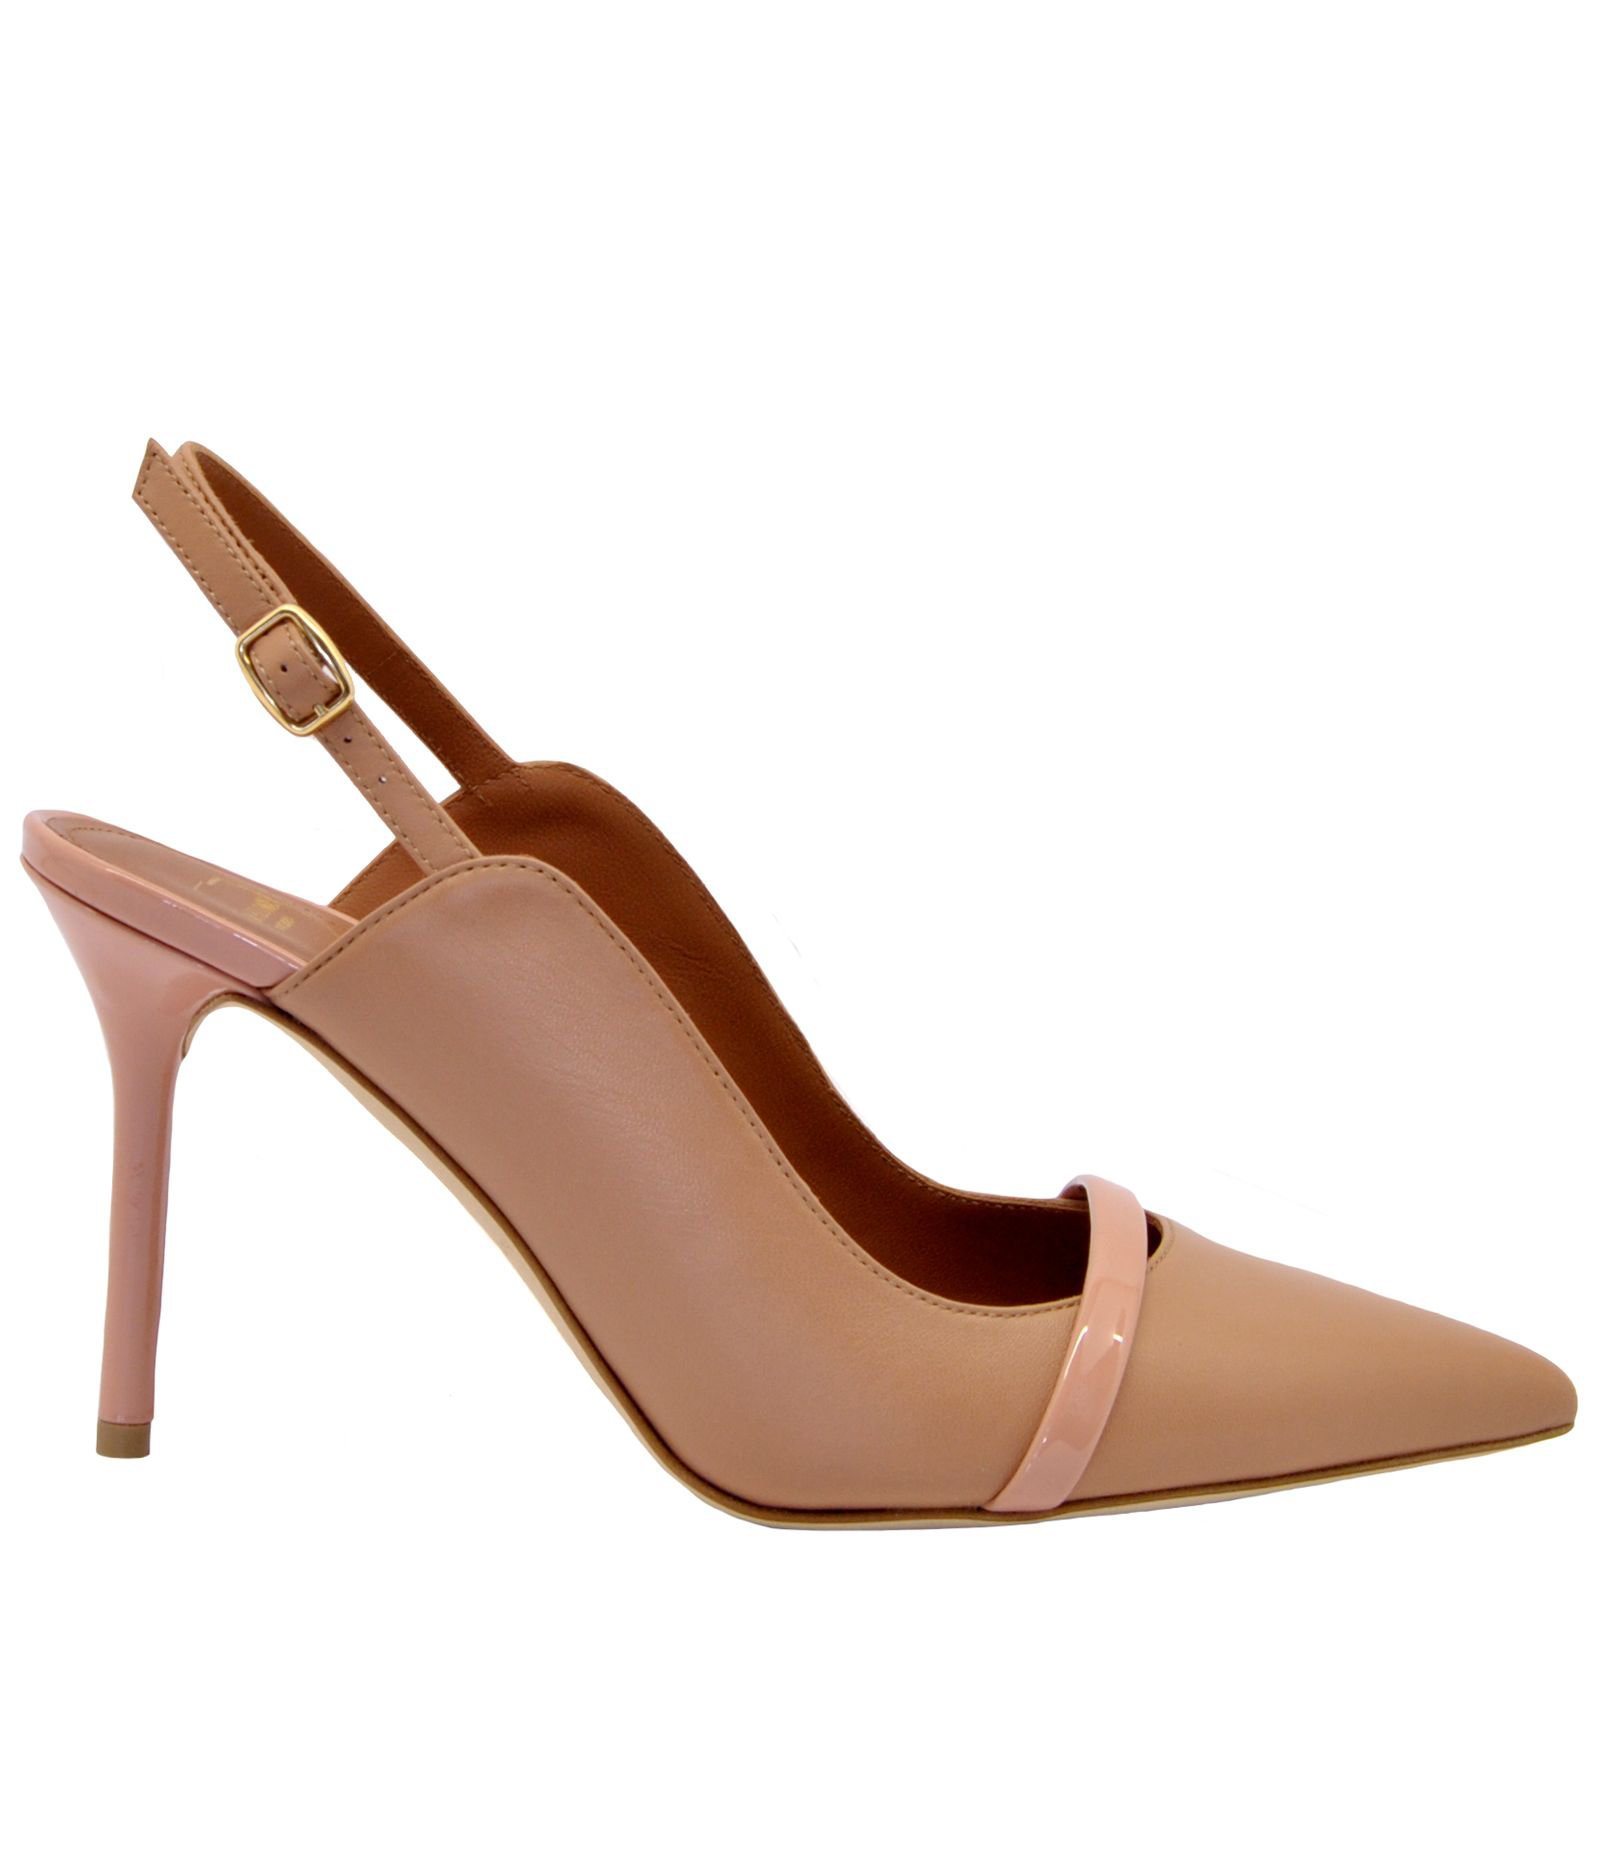 Malone Souliers Marion Slingback Pumps